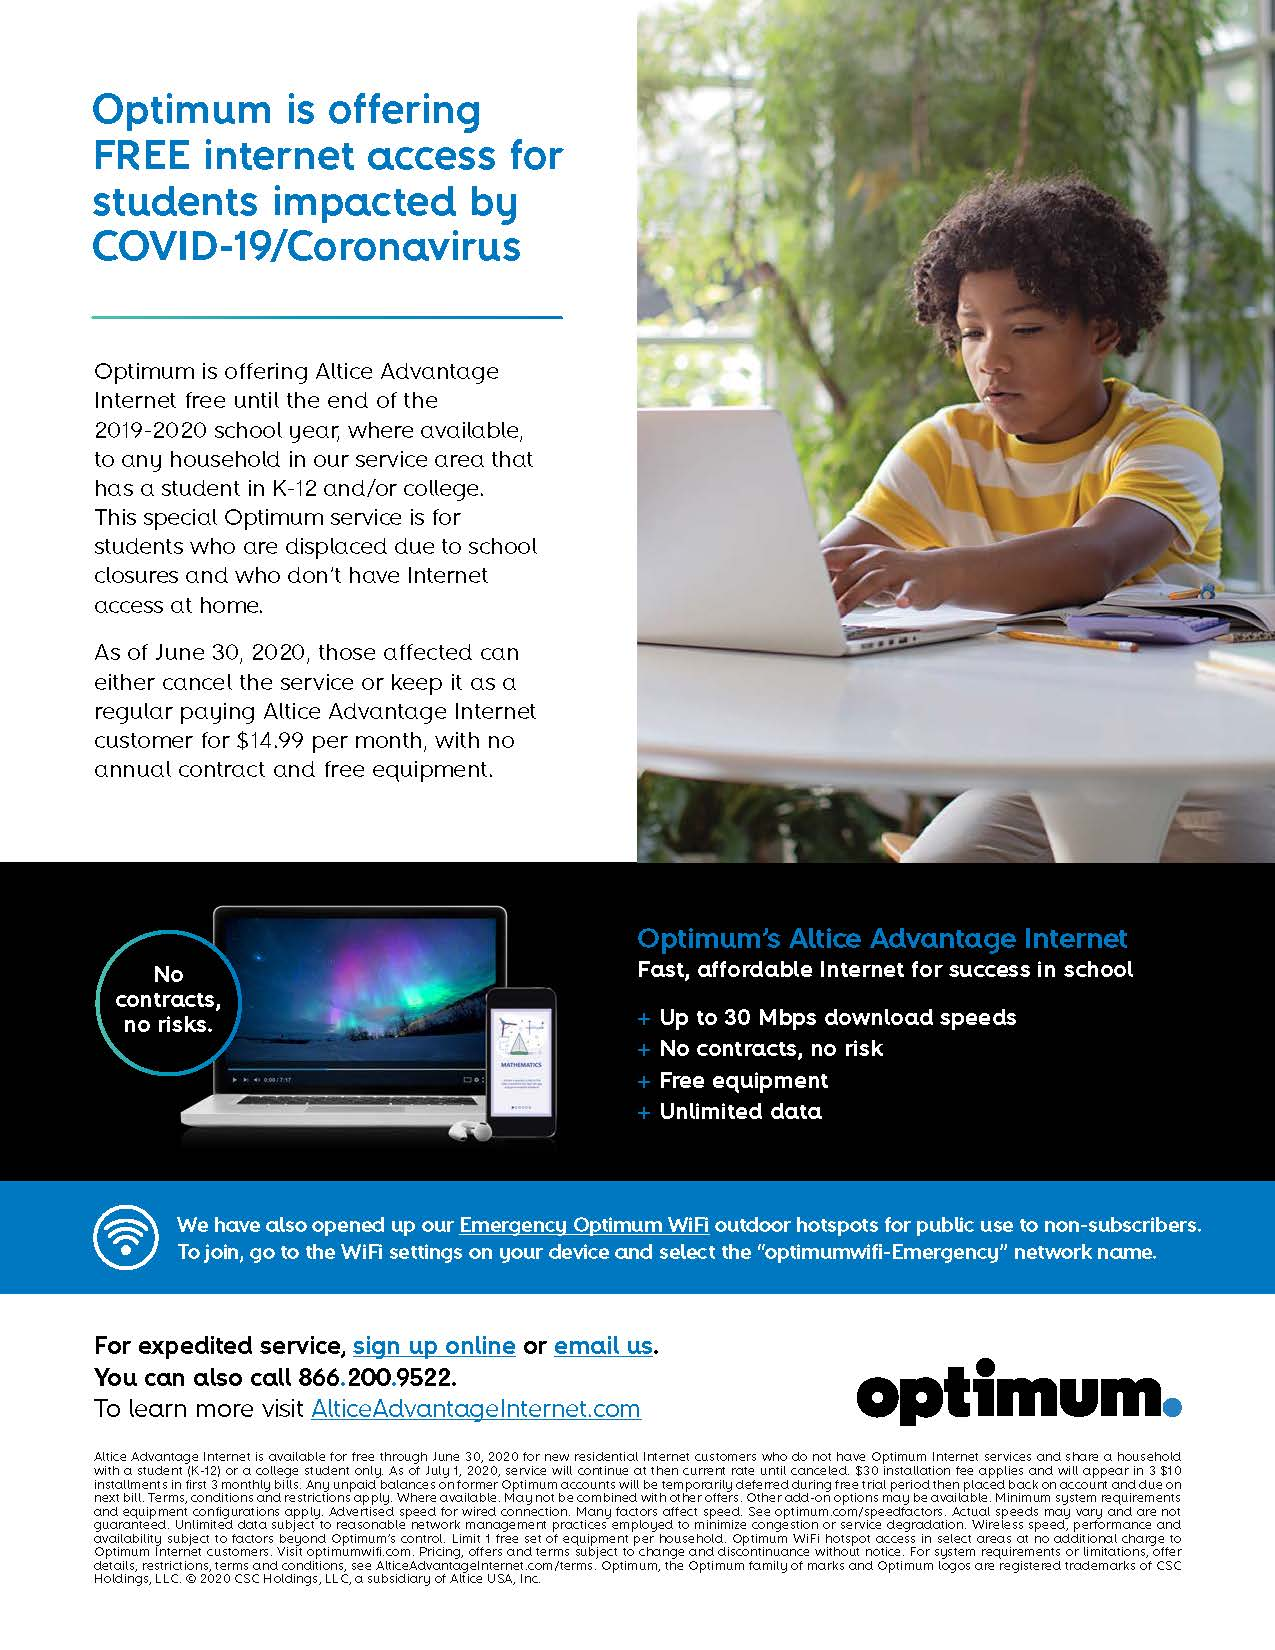 Optimum For Laptop : optimum, laptop, Optimum, Offering, Internet, Access, Students, Impacted, COVID-19